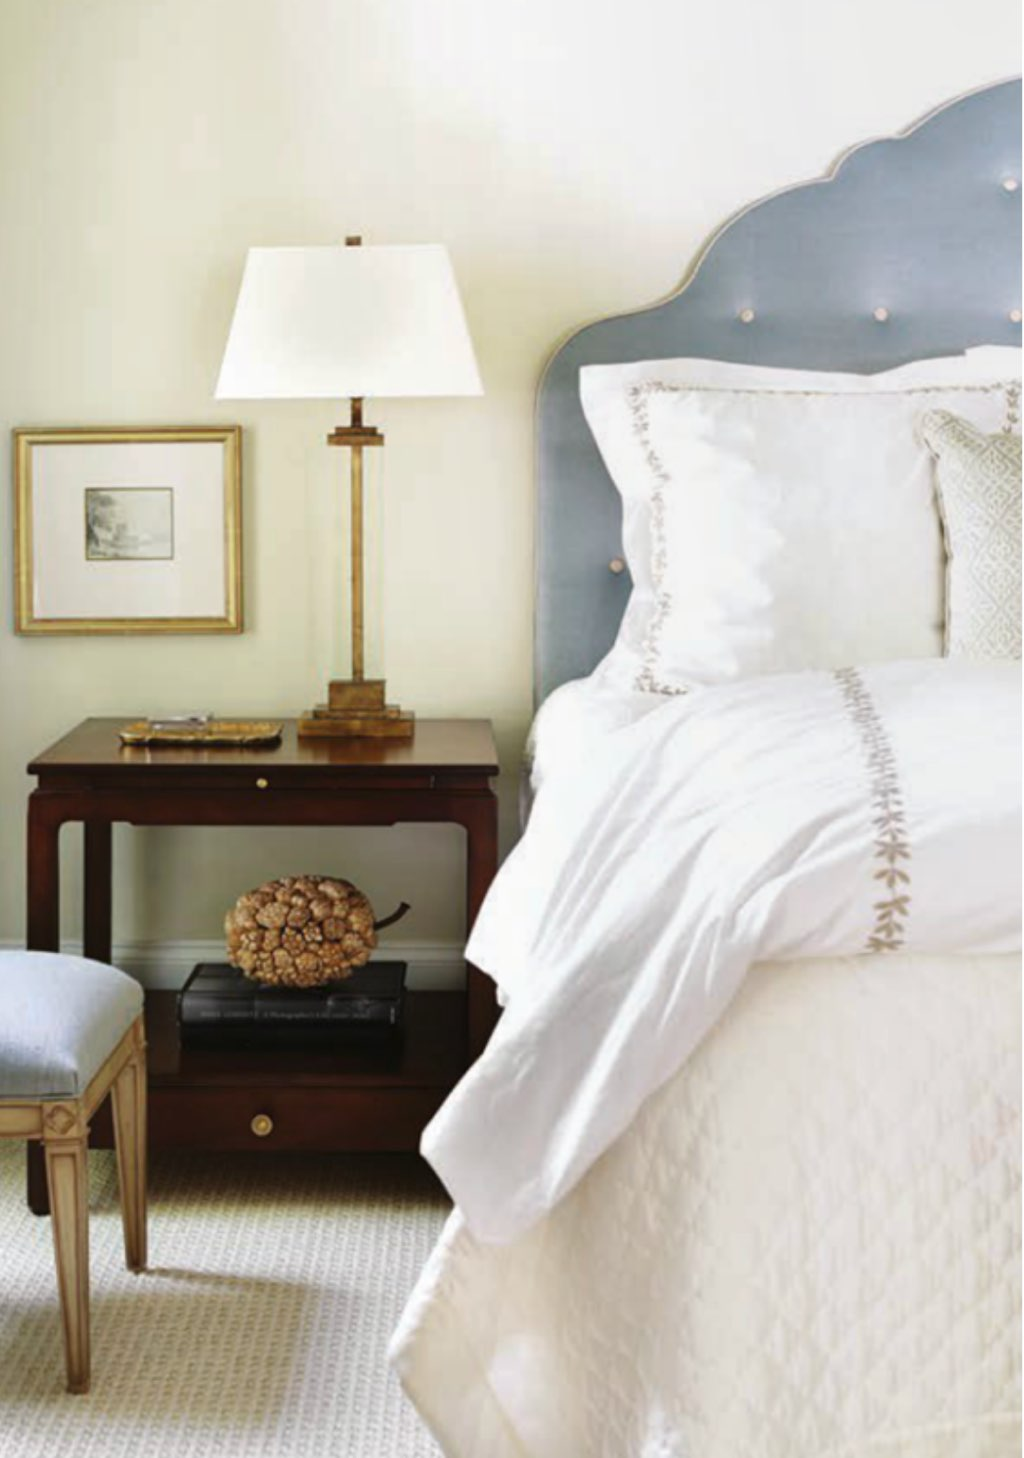 ‎www.simplifiedbee.com_wp-content_uploads_2014_01_serene-bedroom-design-by-Courtney-Giles.png.jpg